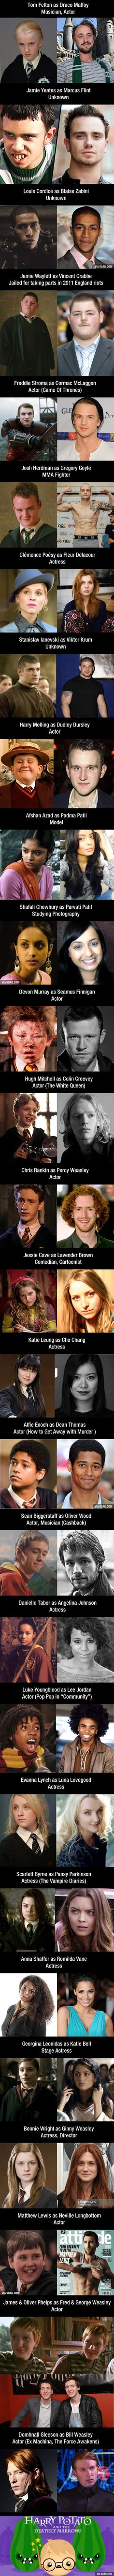 """""""Harry Potter"""" Schoolmates: Then and Now"""